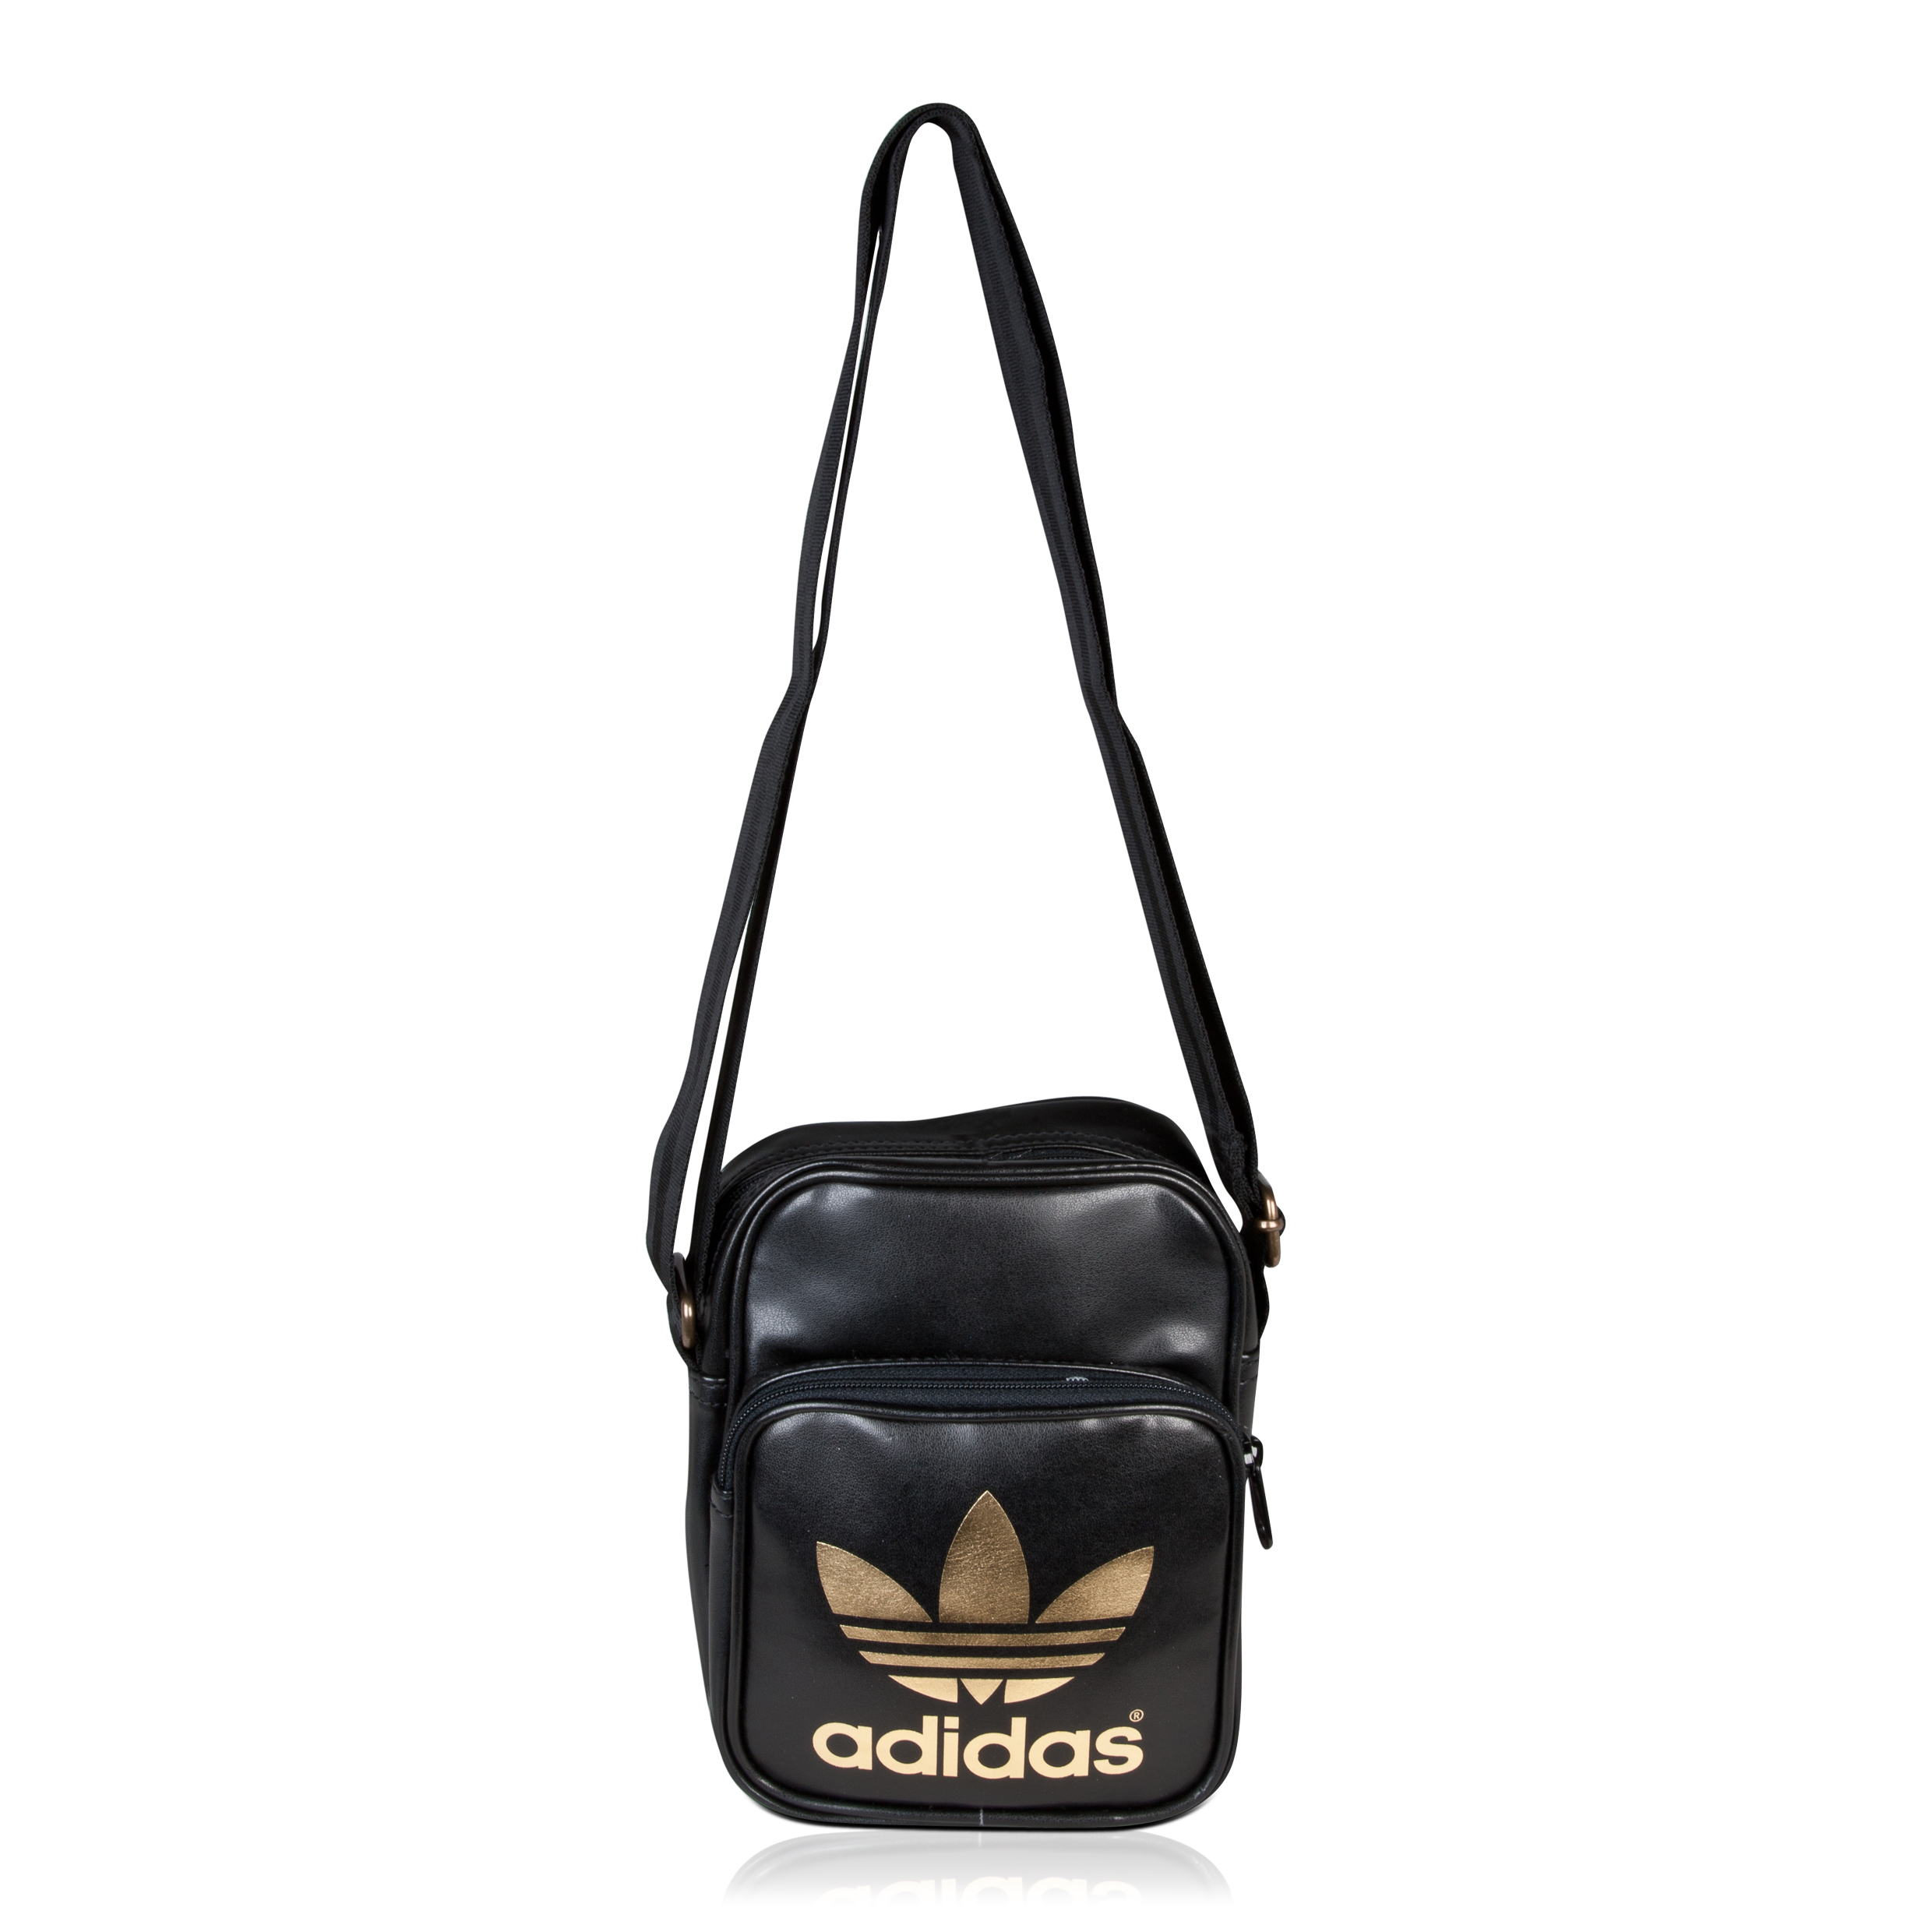 Originals AC Mini Bag - Black/Metallic Gold